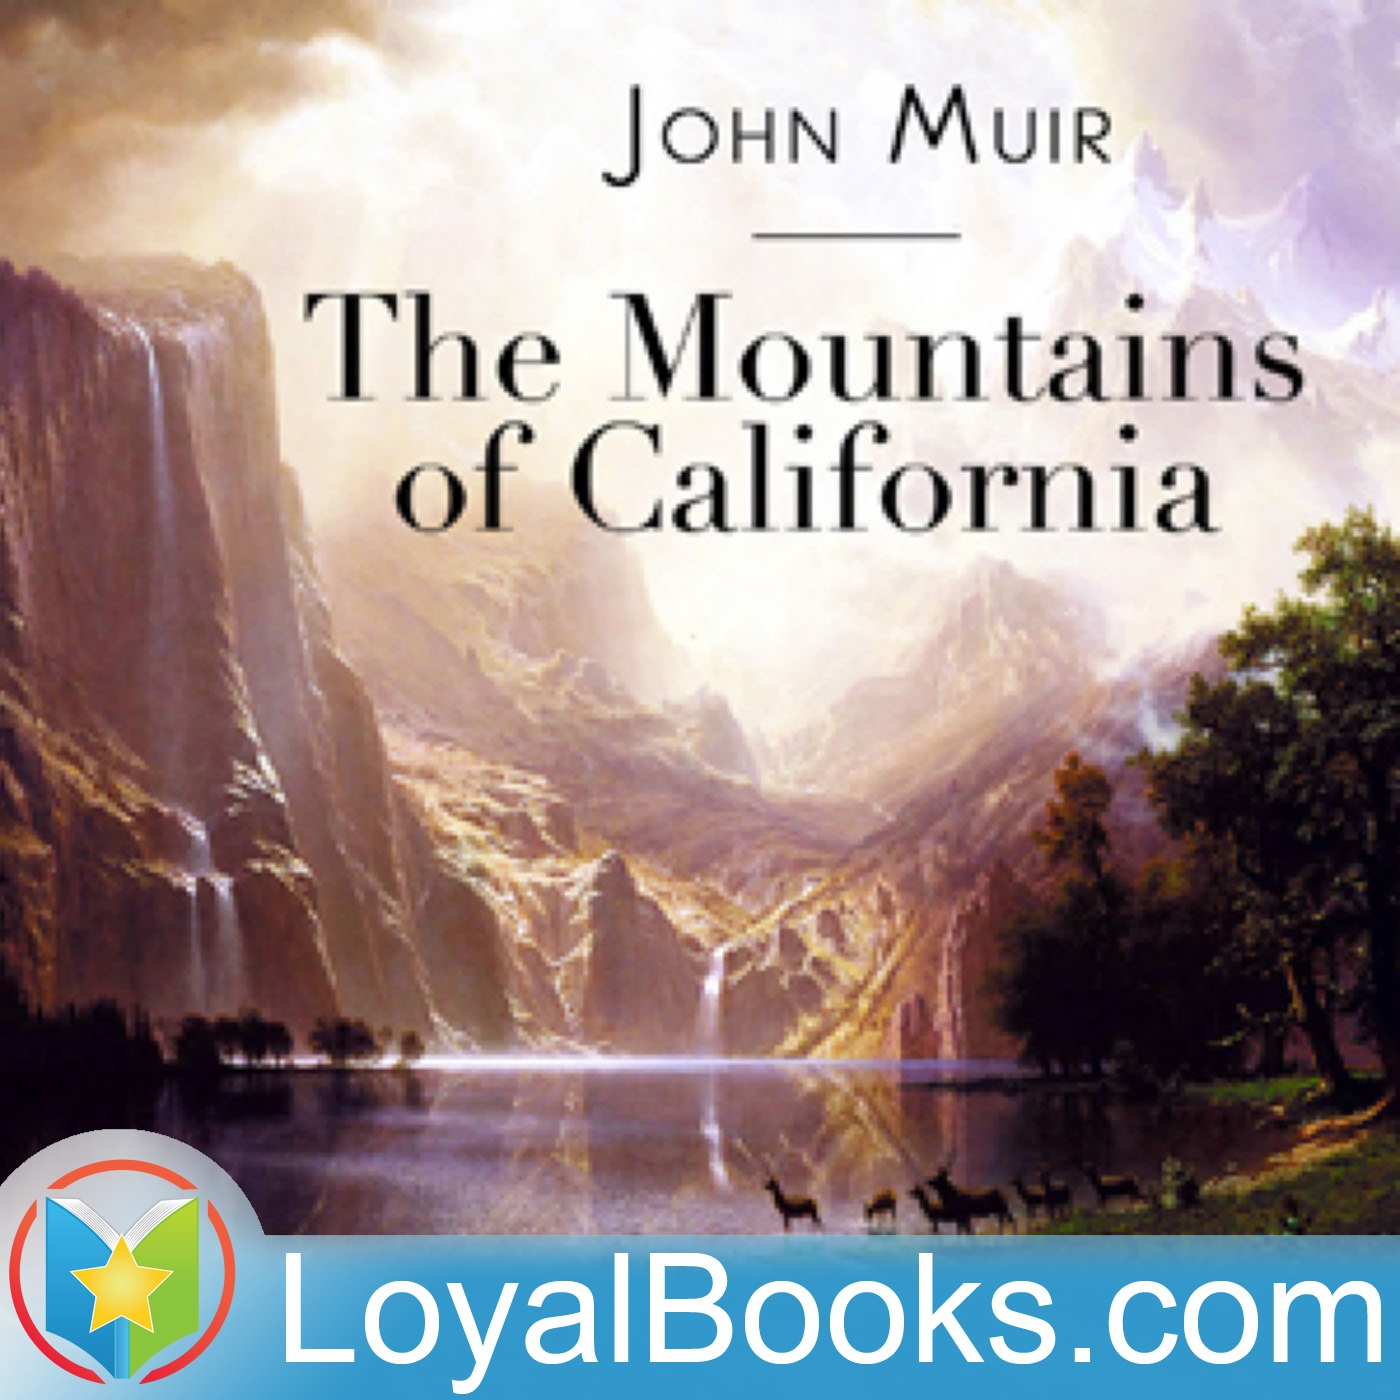 <![CDATA[The Mountains of California by John Muir]]>